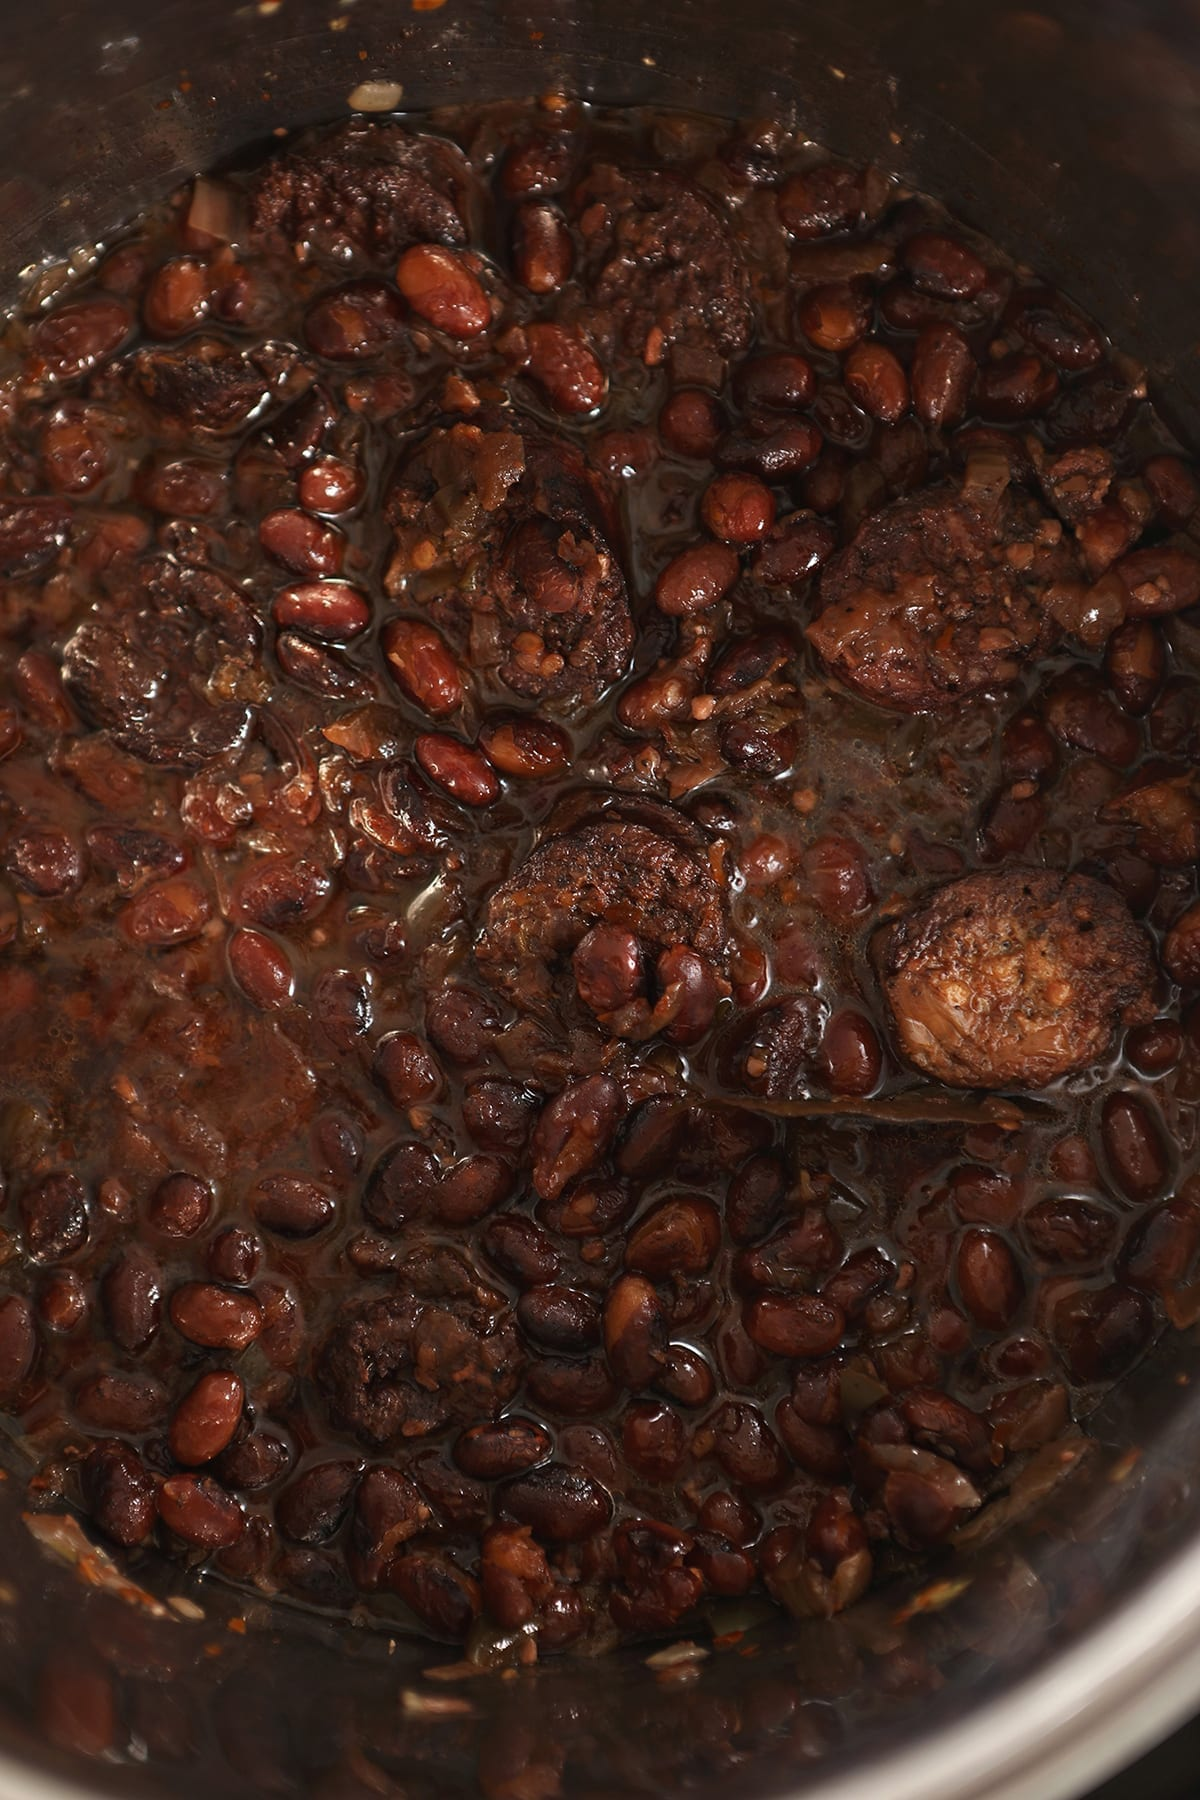 Cooked Red Beans with sausage in the bowl of the Instant Pot